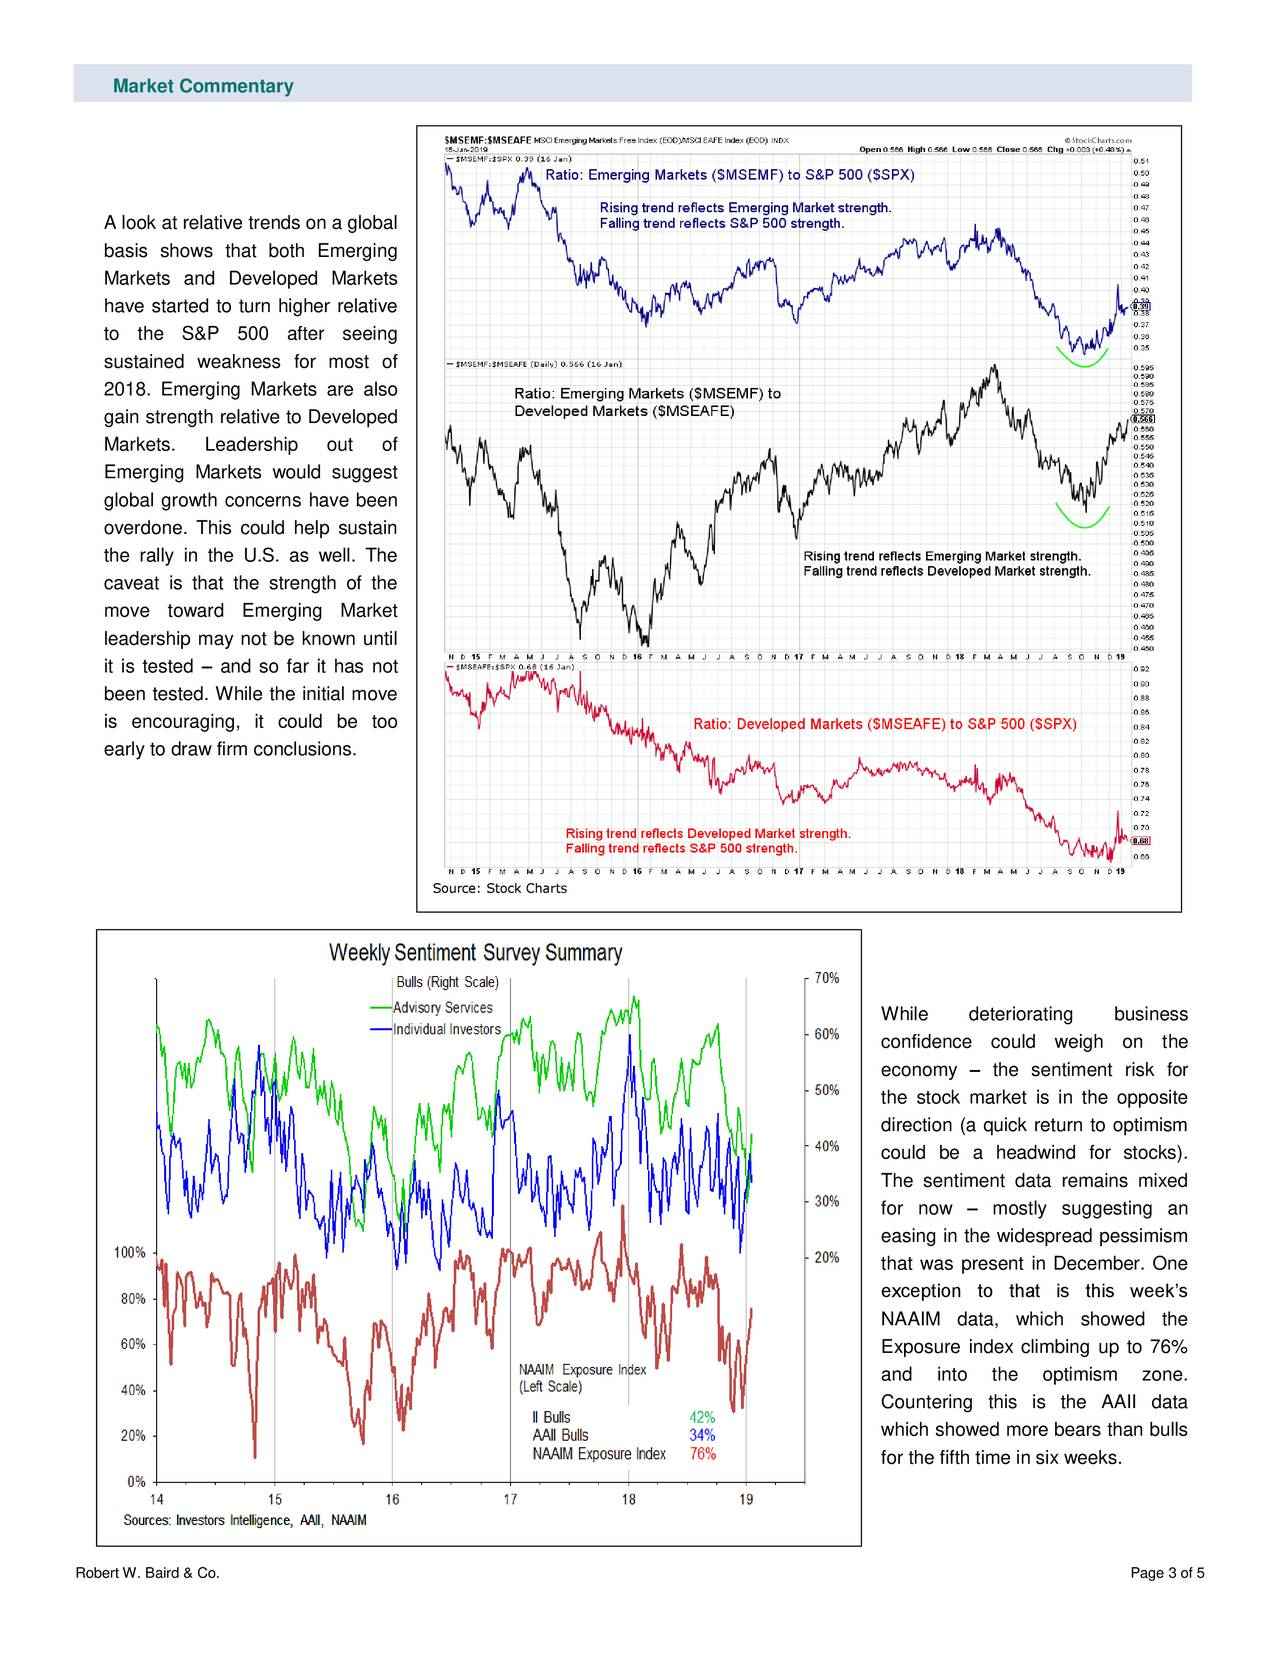 A look at relative trends on a global basis shows that both Emerging Markets and Developed Markets have started to turn higher relative to the S&P 500 after seeing sustained weakness for most of 2018. Emerging Markets are also gain strength relative to Developed Markets. Leadership out of Emerging Markets would suggest global growth concerns have been overdone. This could help sustain the rally in the U.S. as well. The caveat is that the strength of the move toward Emerging Market leadership may not be known until it is tested – and so far it has not been tested. While the initial move is encouraging, it could be too early to draw firm conclusions. Source: Stock Charts While deteriorating business confidence could weigh on the economy – the sentiment risk for the stock market is in the opposite direction (a quick return to optimism could be a headwind for stocks). The sentiment data remains mixed for now – mostly suggesting an easing in the widespread pessimism that was present in December. One exception to that is this week's NAAIM data, which showed the Exposure index climbing up to 76% and into the optimism zone. Countering this is the AAII data which showed more bears than bulls for the fifth time in six weeks. Robert W. Baird & Co. Page 3 of 5